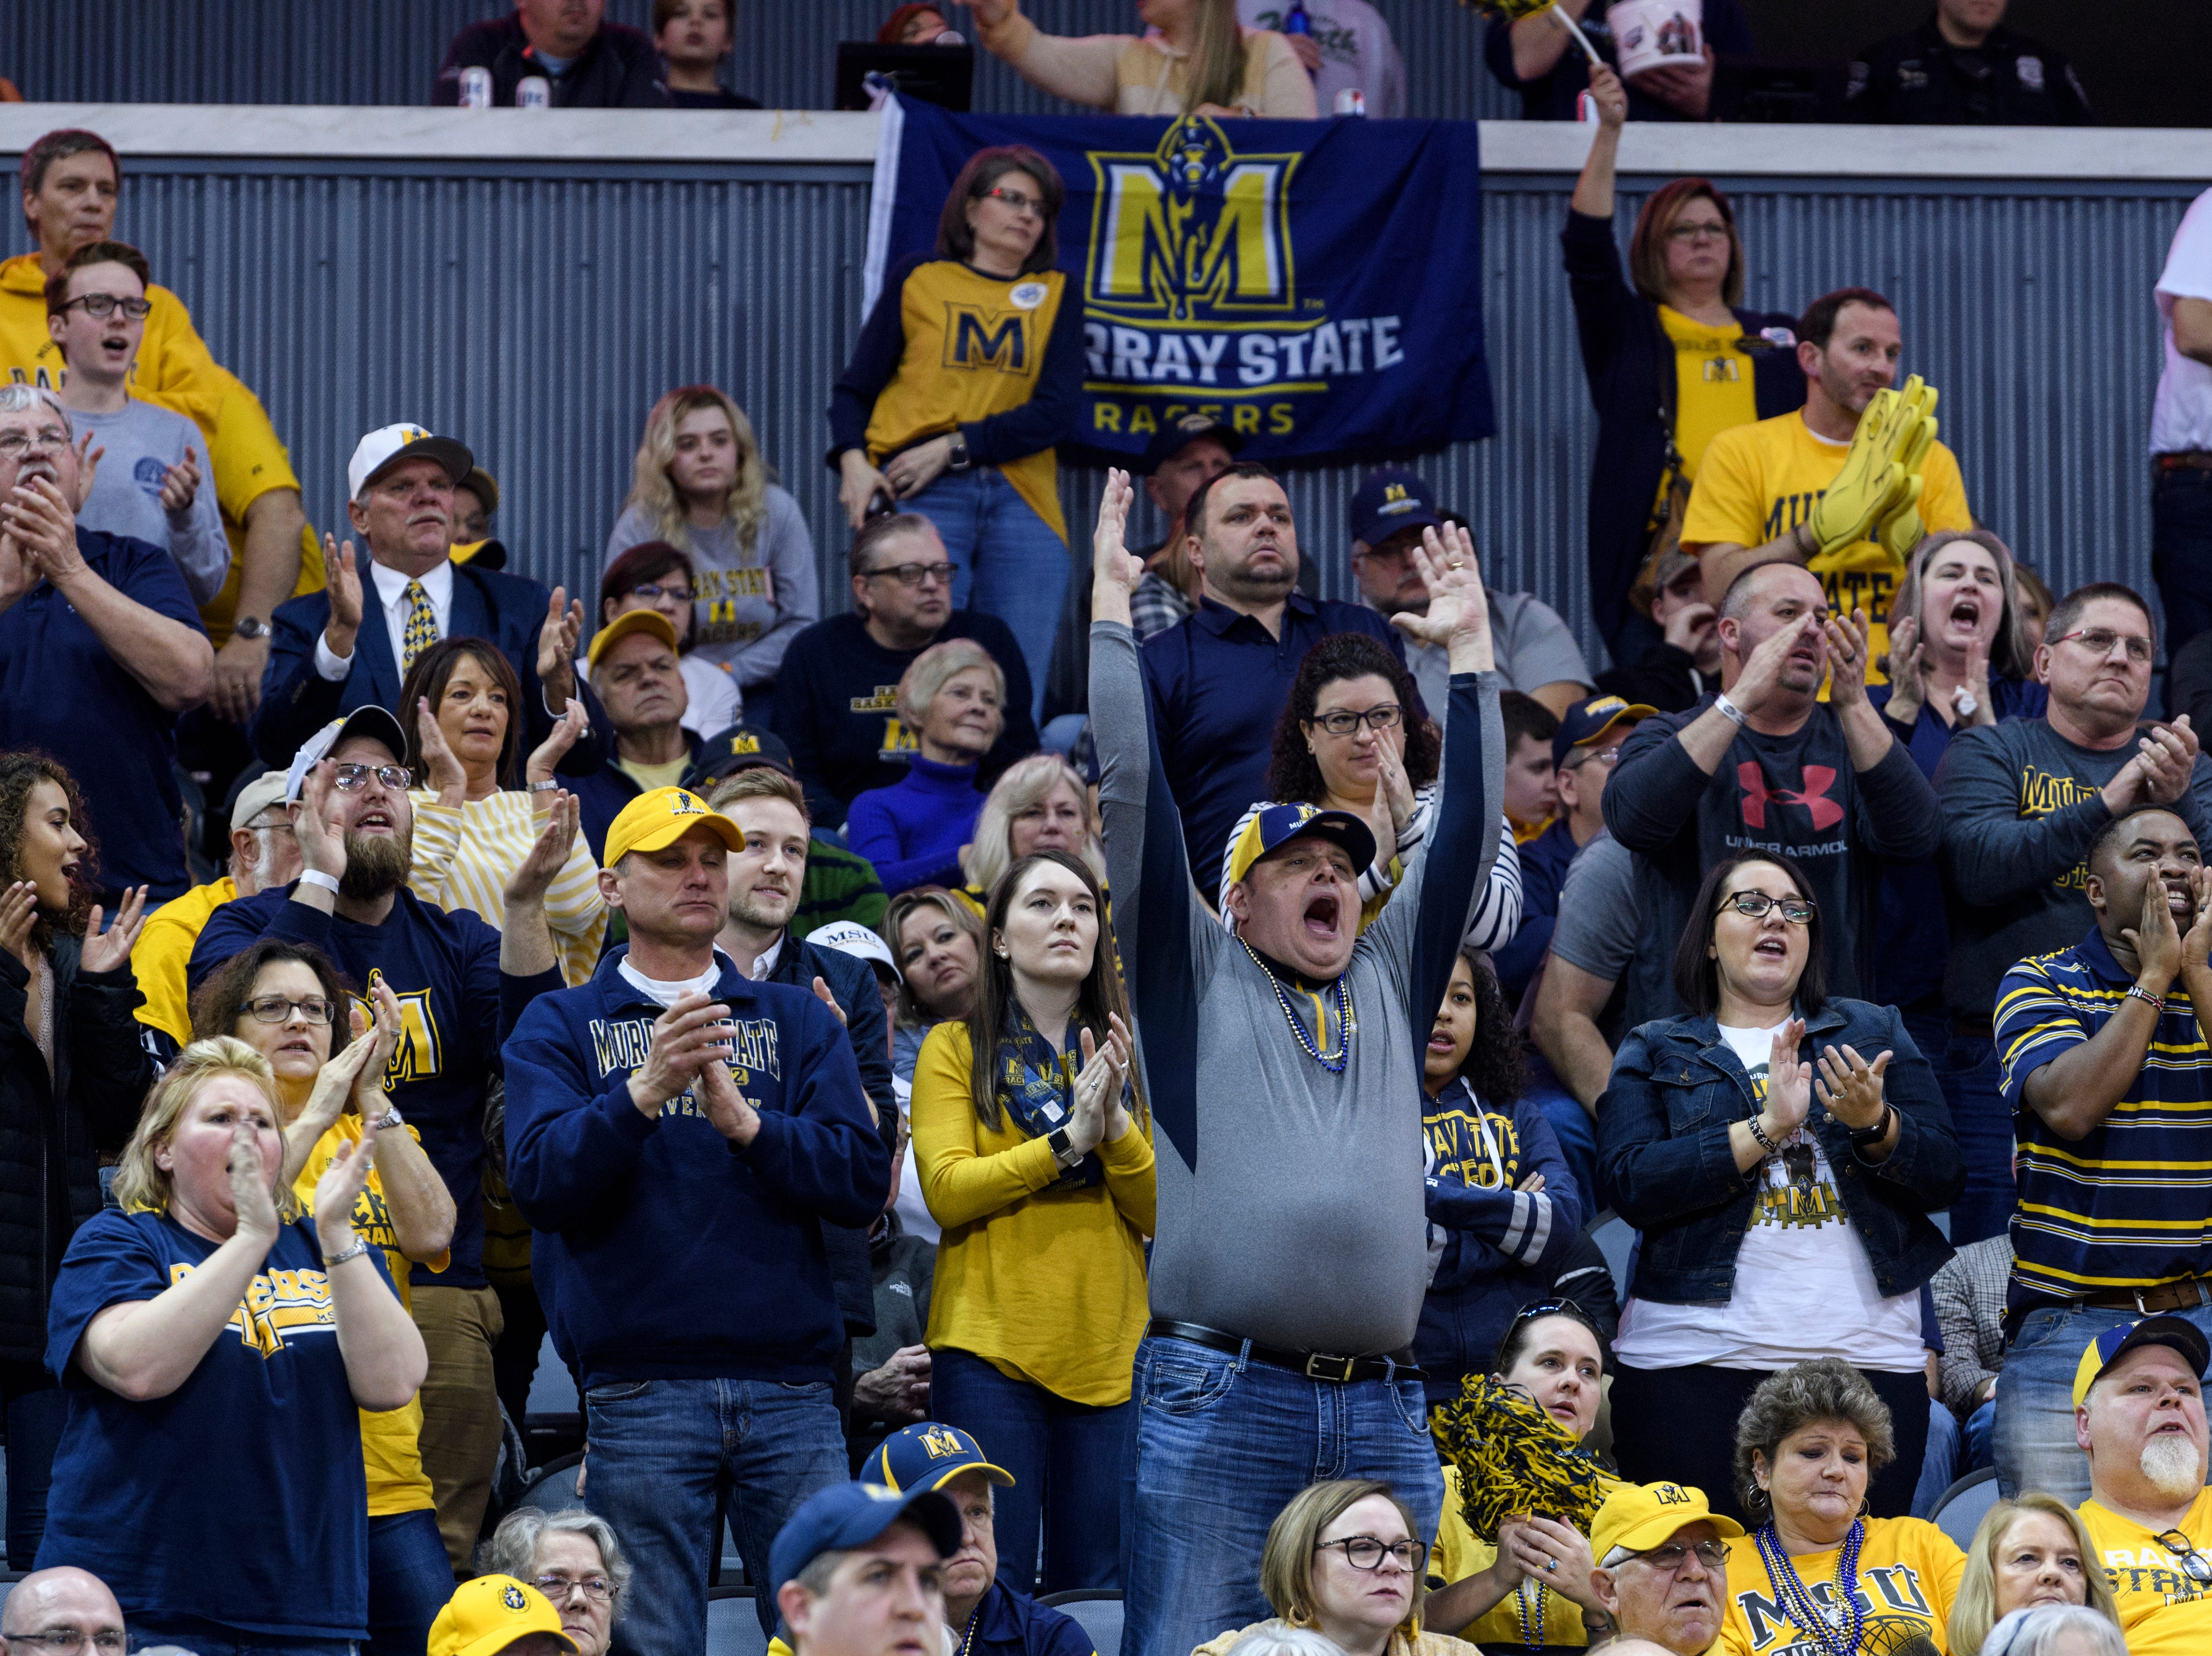 Murray State University Racers fans cheer loudly during the Ohio Valley Conference men's basketball championship against the Belmont University Bruins at Ford Center in Evansville, Ind., Saturday, March 9, 2019.